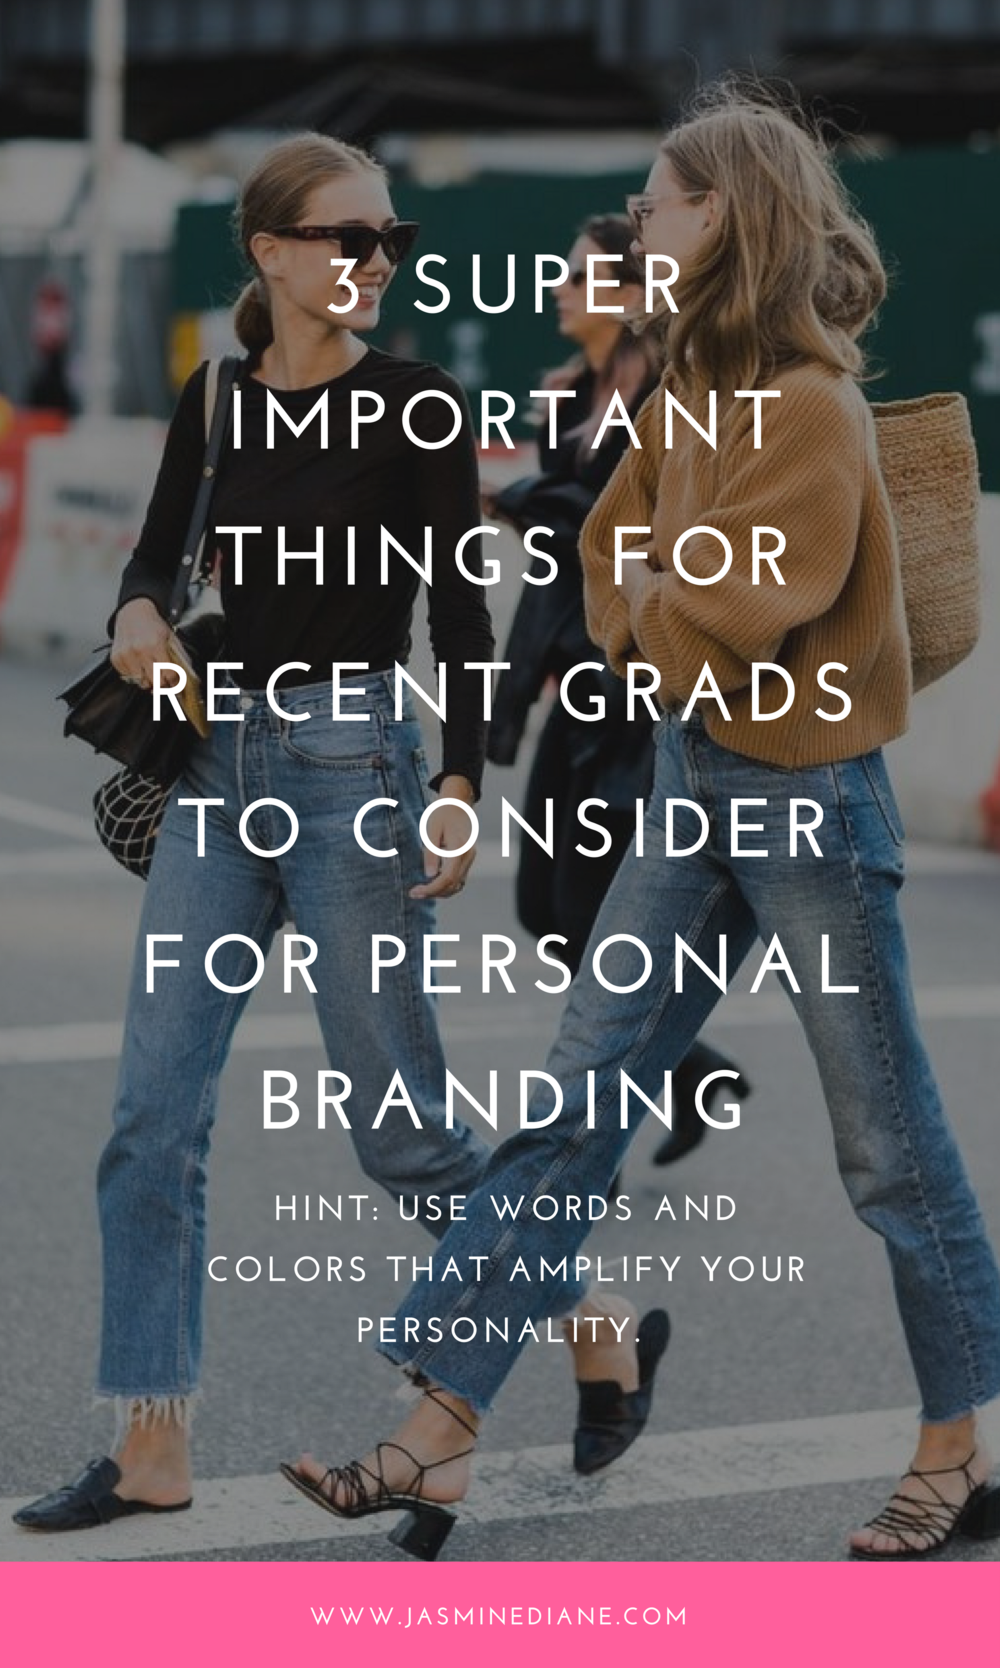 3 Super Important Things for Recent Grads to Consider for Personal Branding.png